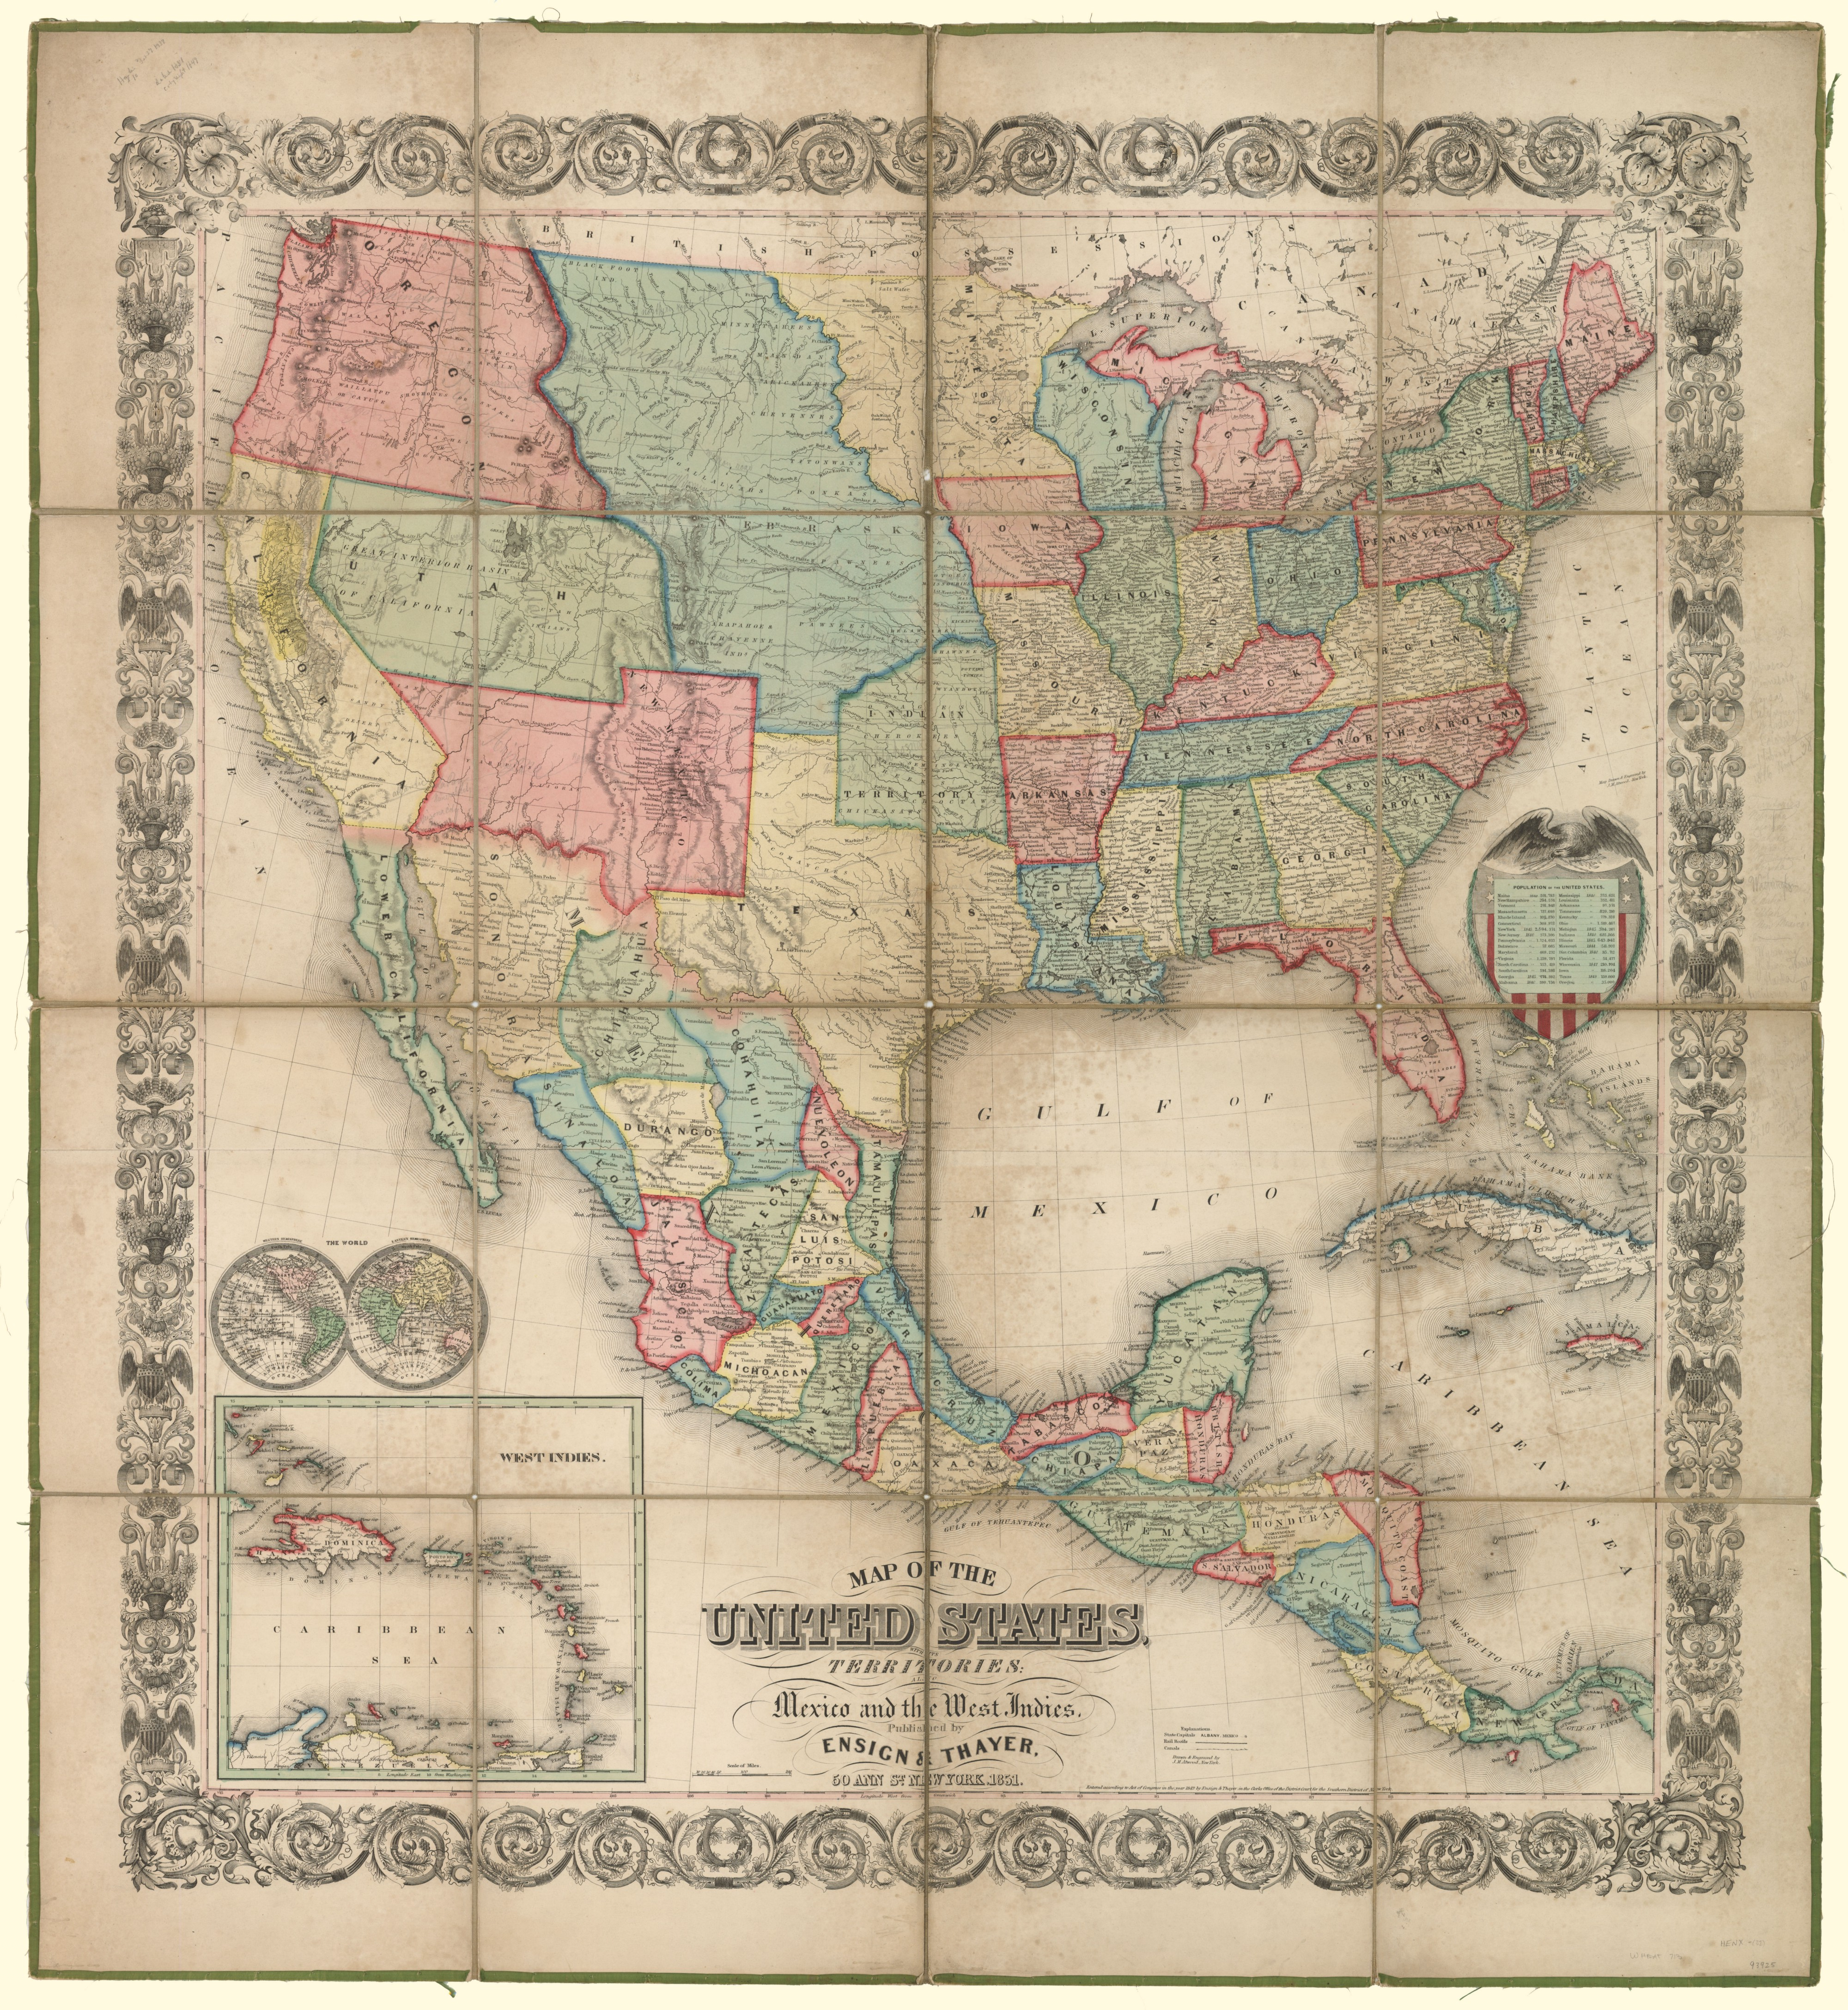 Map of the United States with its territories: also Mexico ...